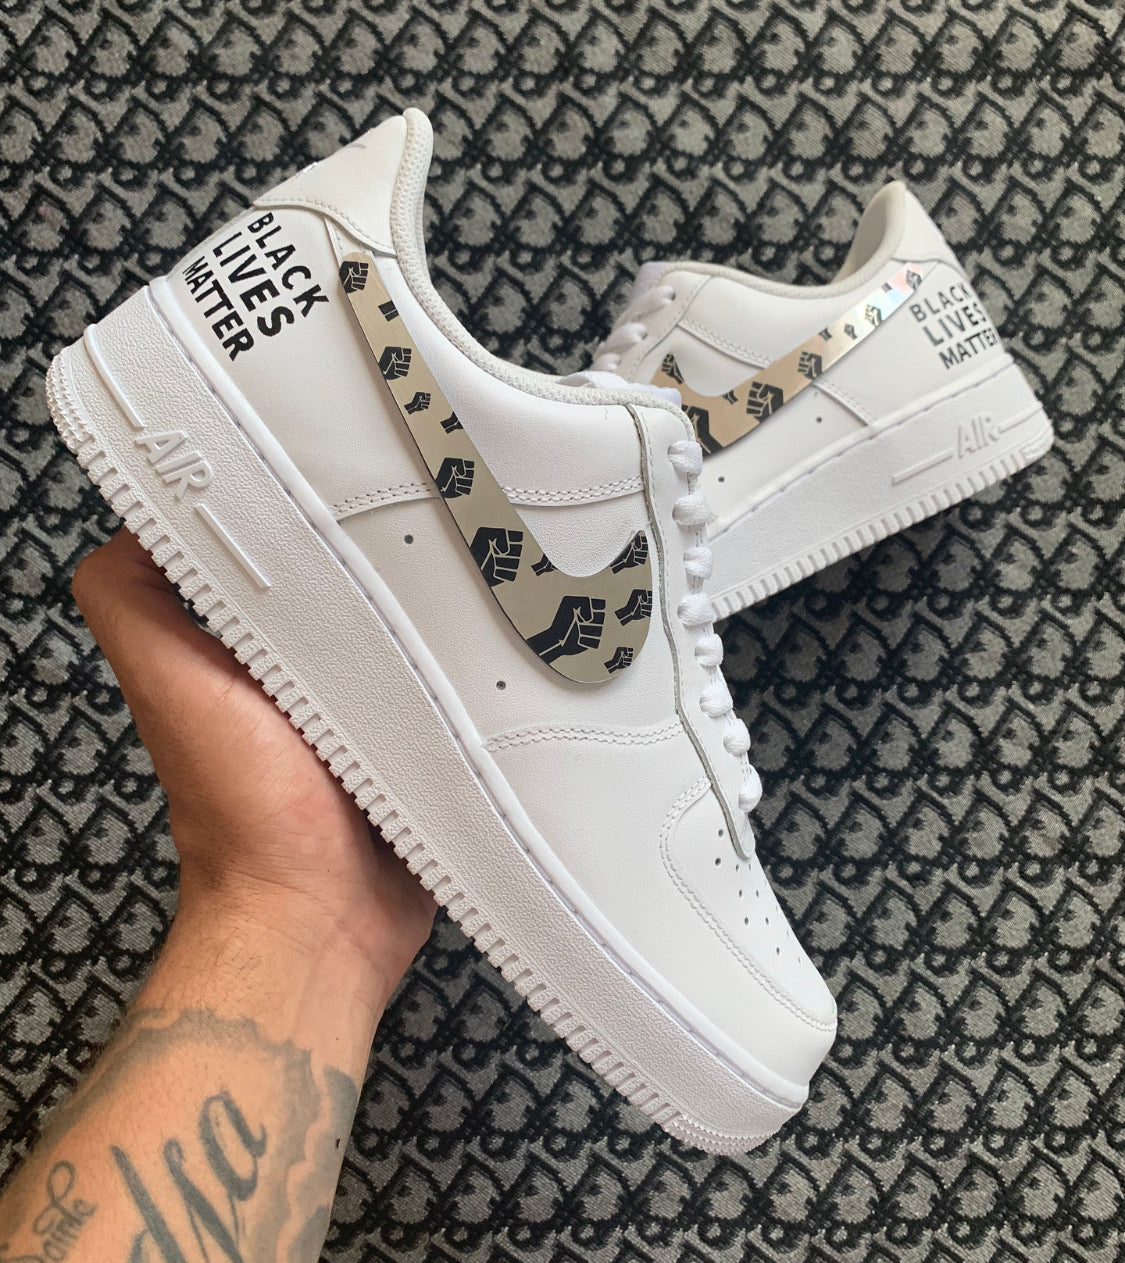 AIR FORCE 1 : BLM BLACK LIVES MATTER